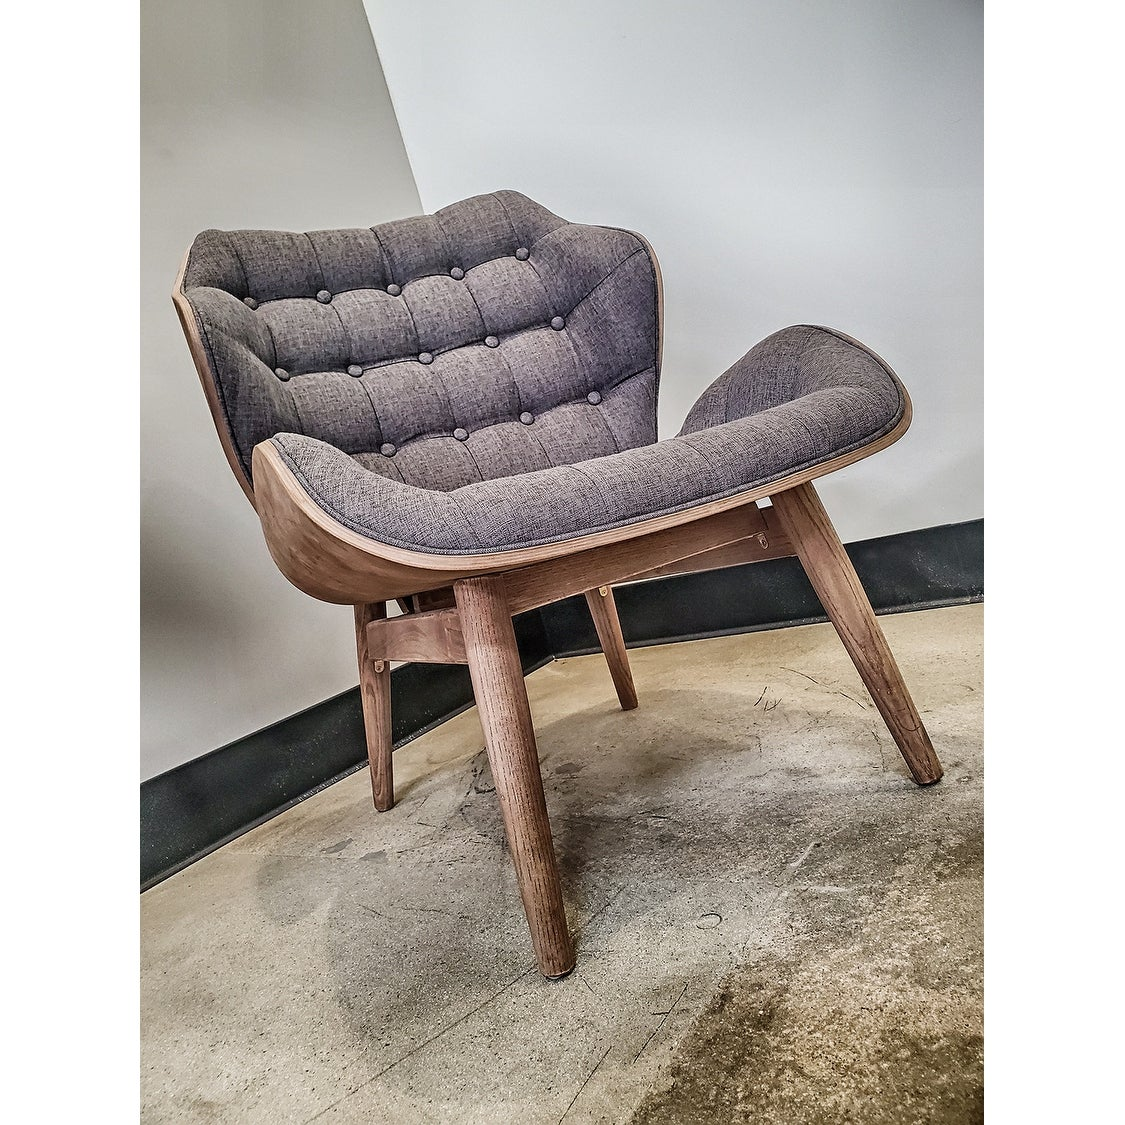 Large Fabric Tufted Dark Wood Accent Lounge Modern Chair Upholstered High  Back Living Room Bedroom Office Waiting Comfortable